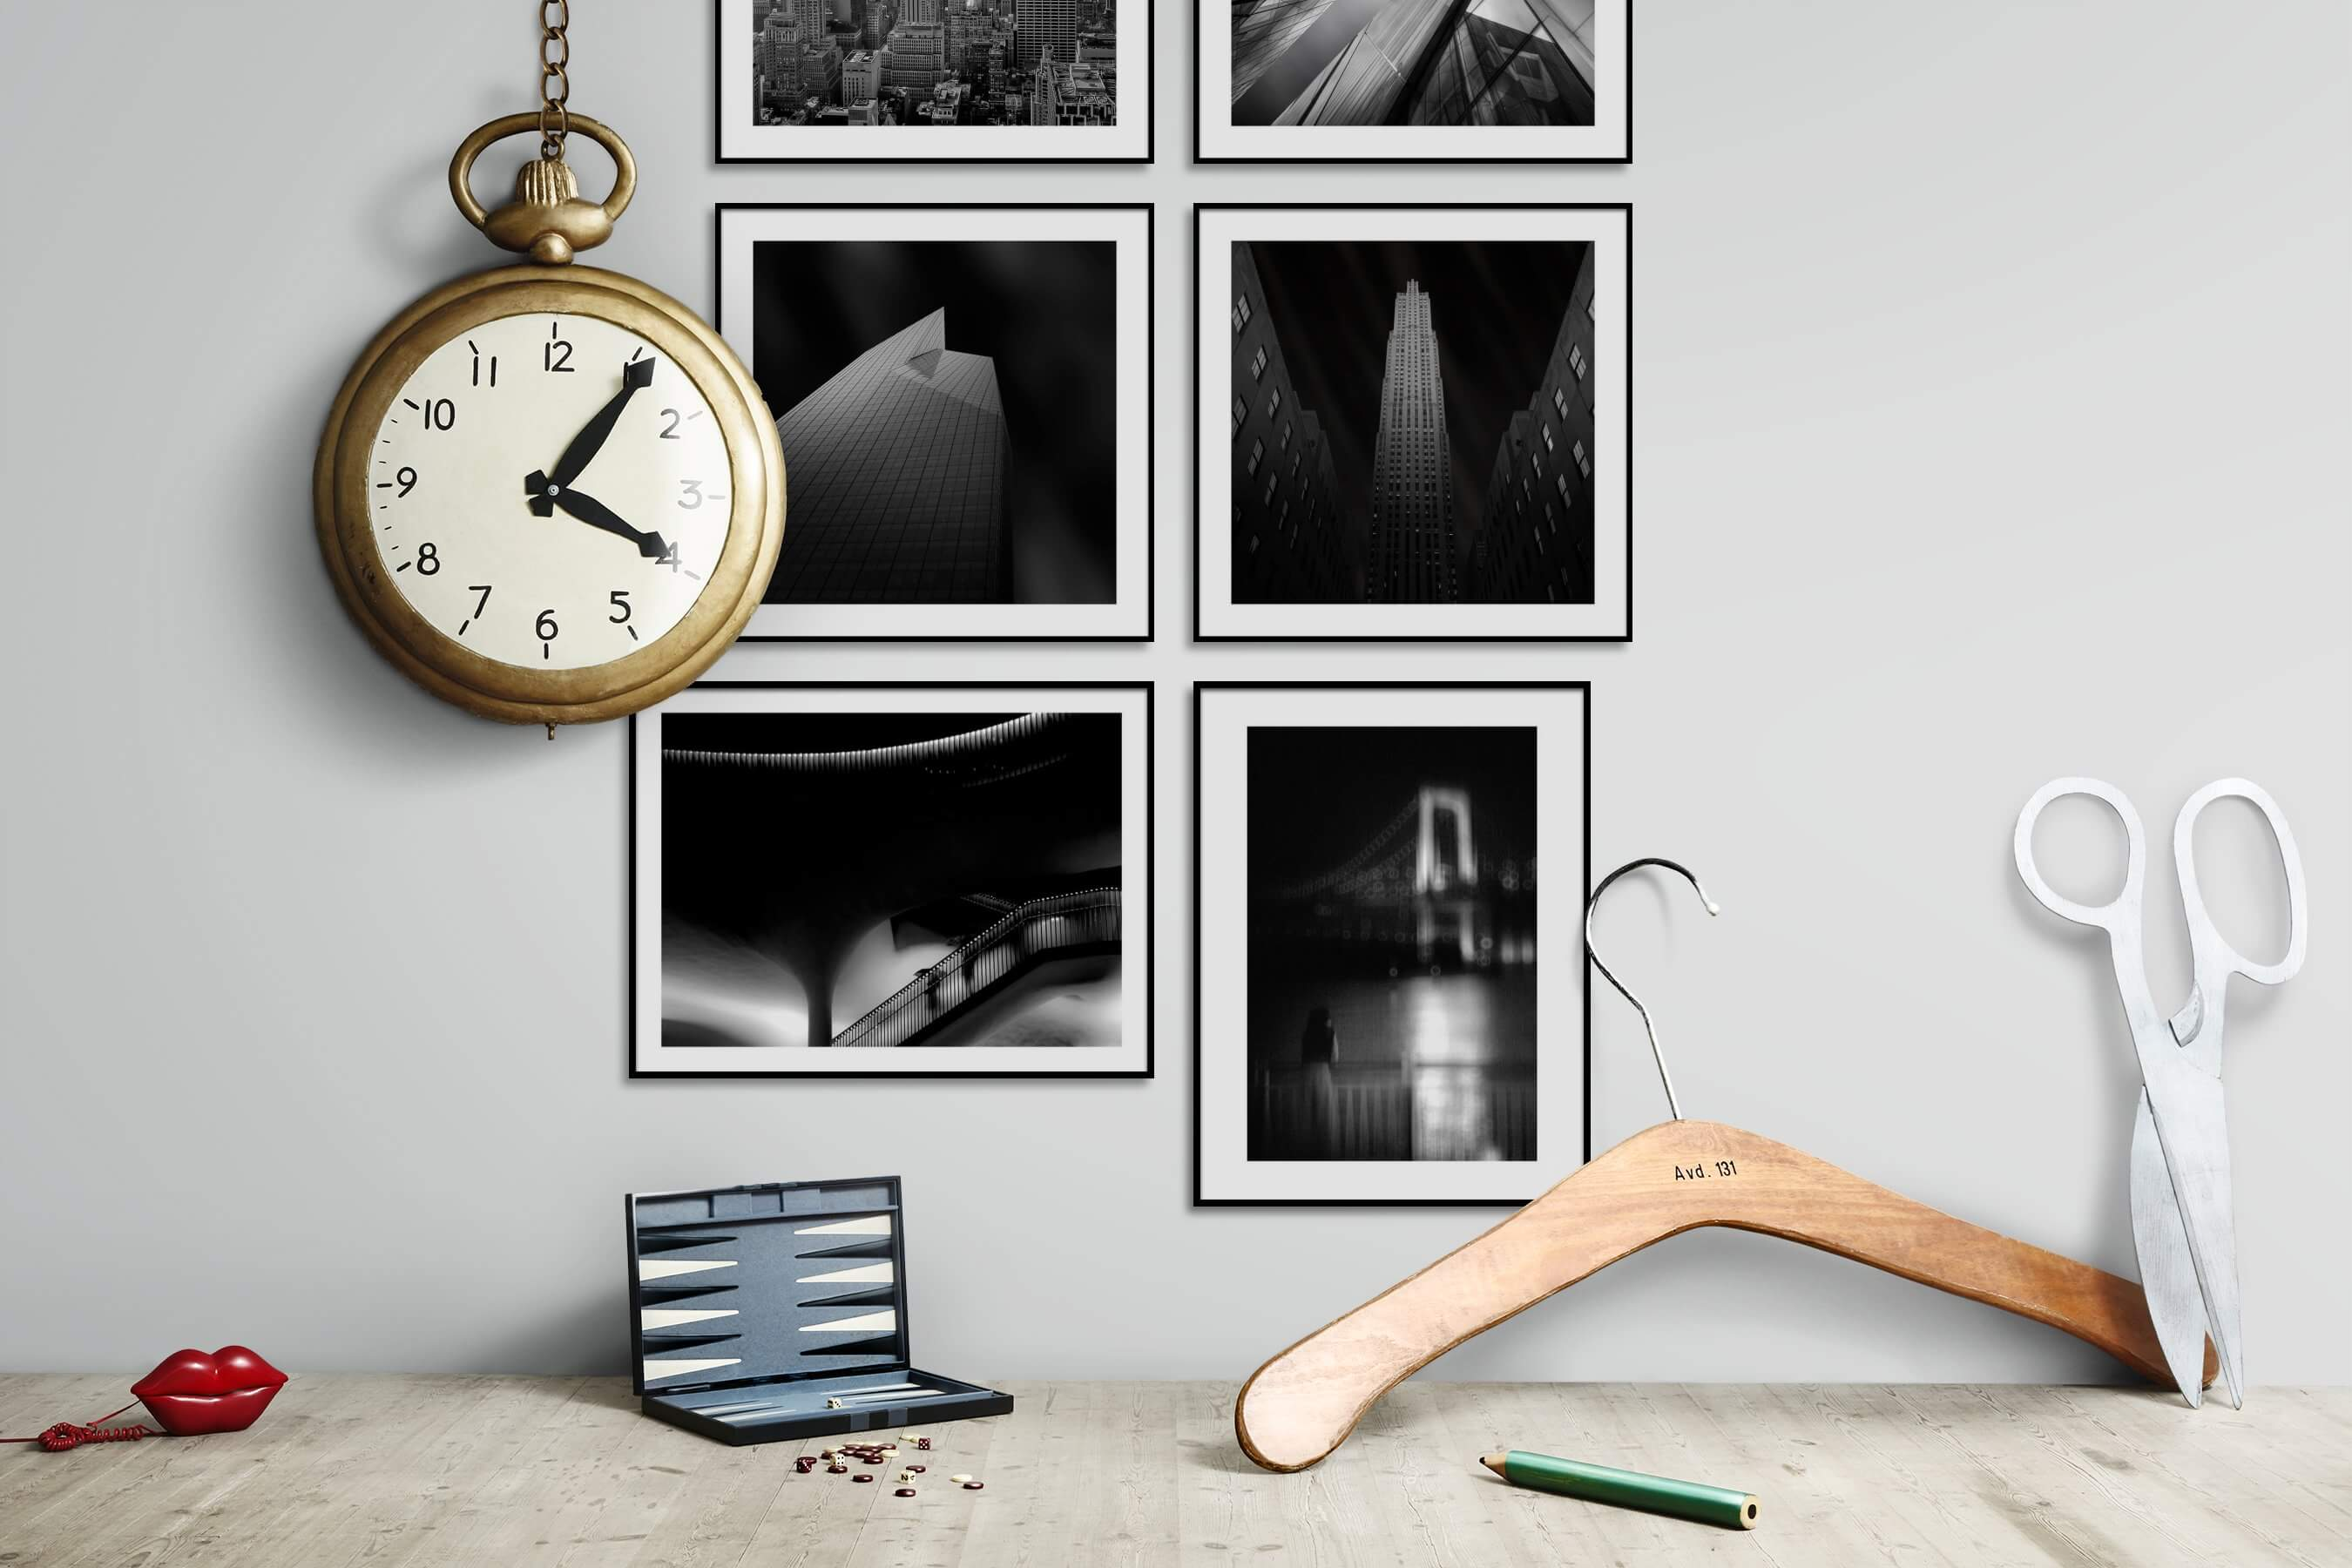 Gallery wall idea with six framed pictures arranged on a wall depicting Black & White, City Life, Americana, For the Moderate, and For the Minimalist